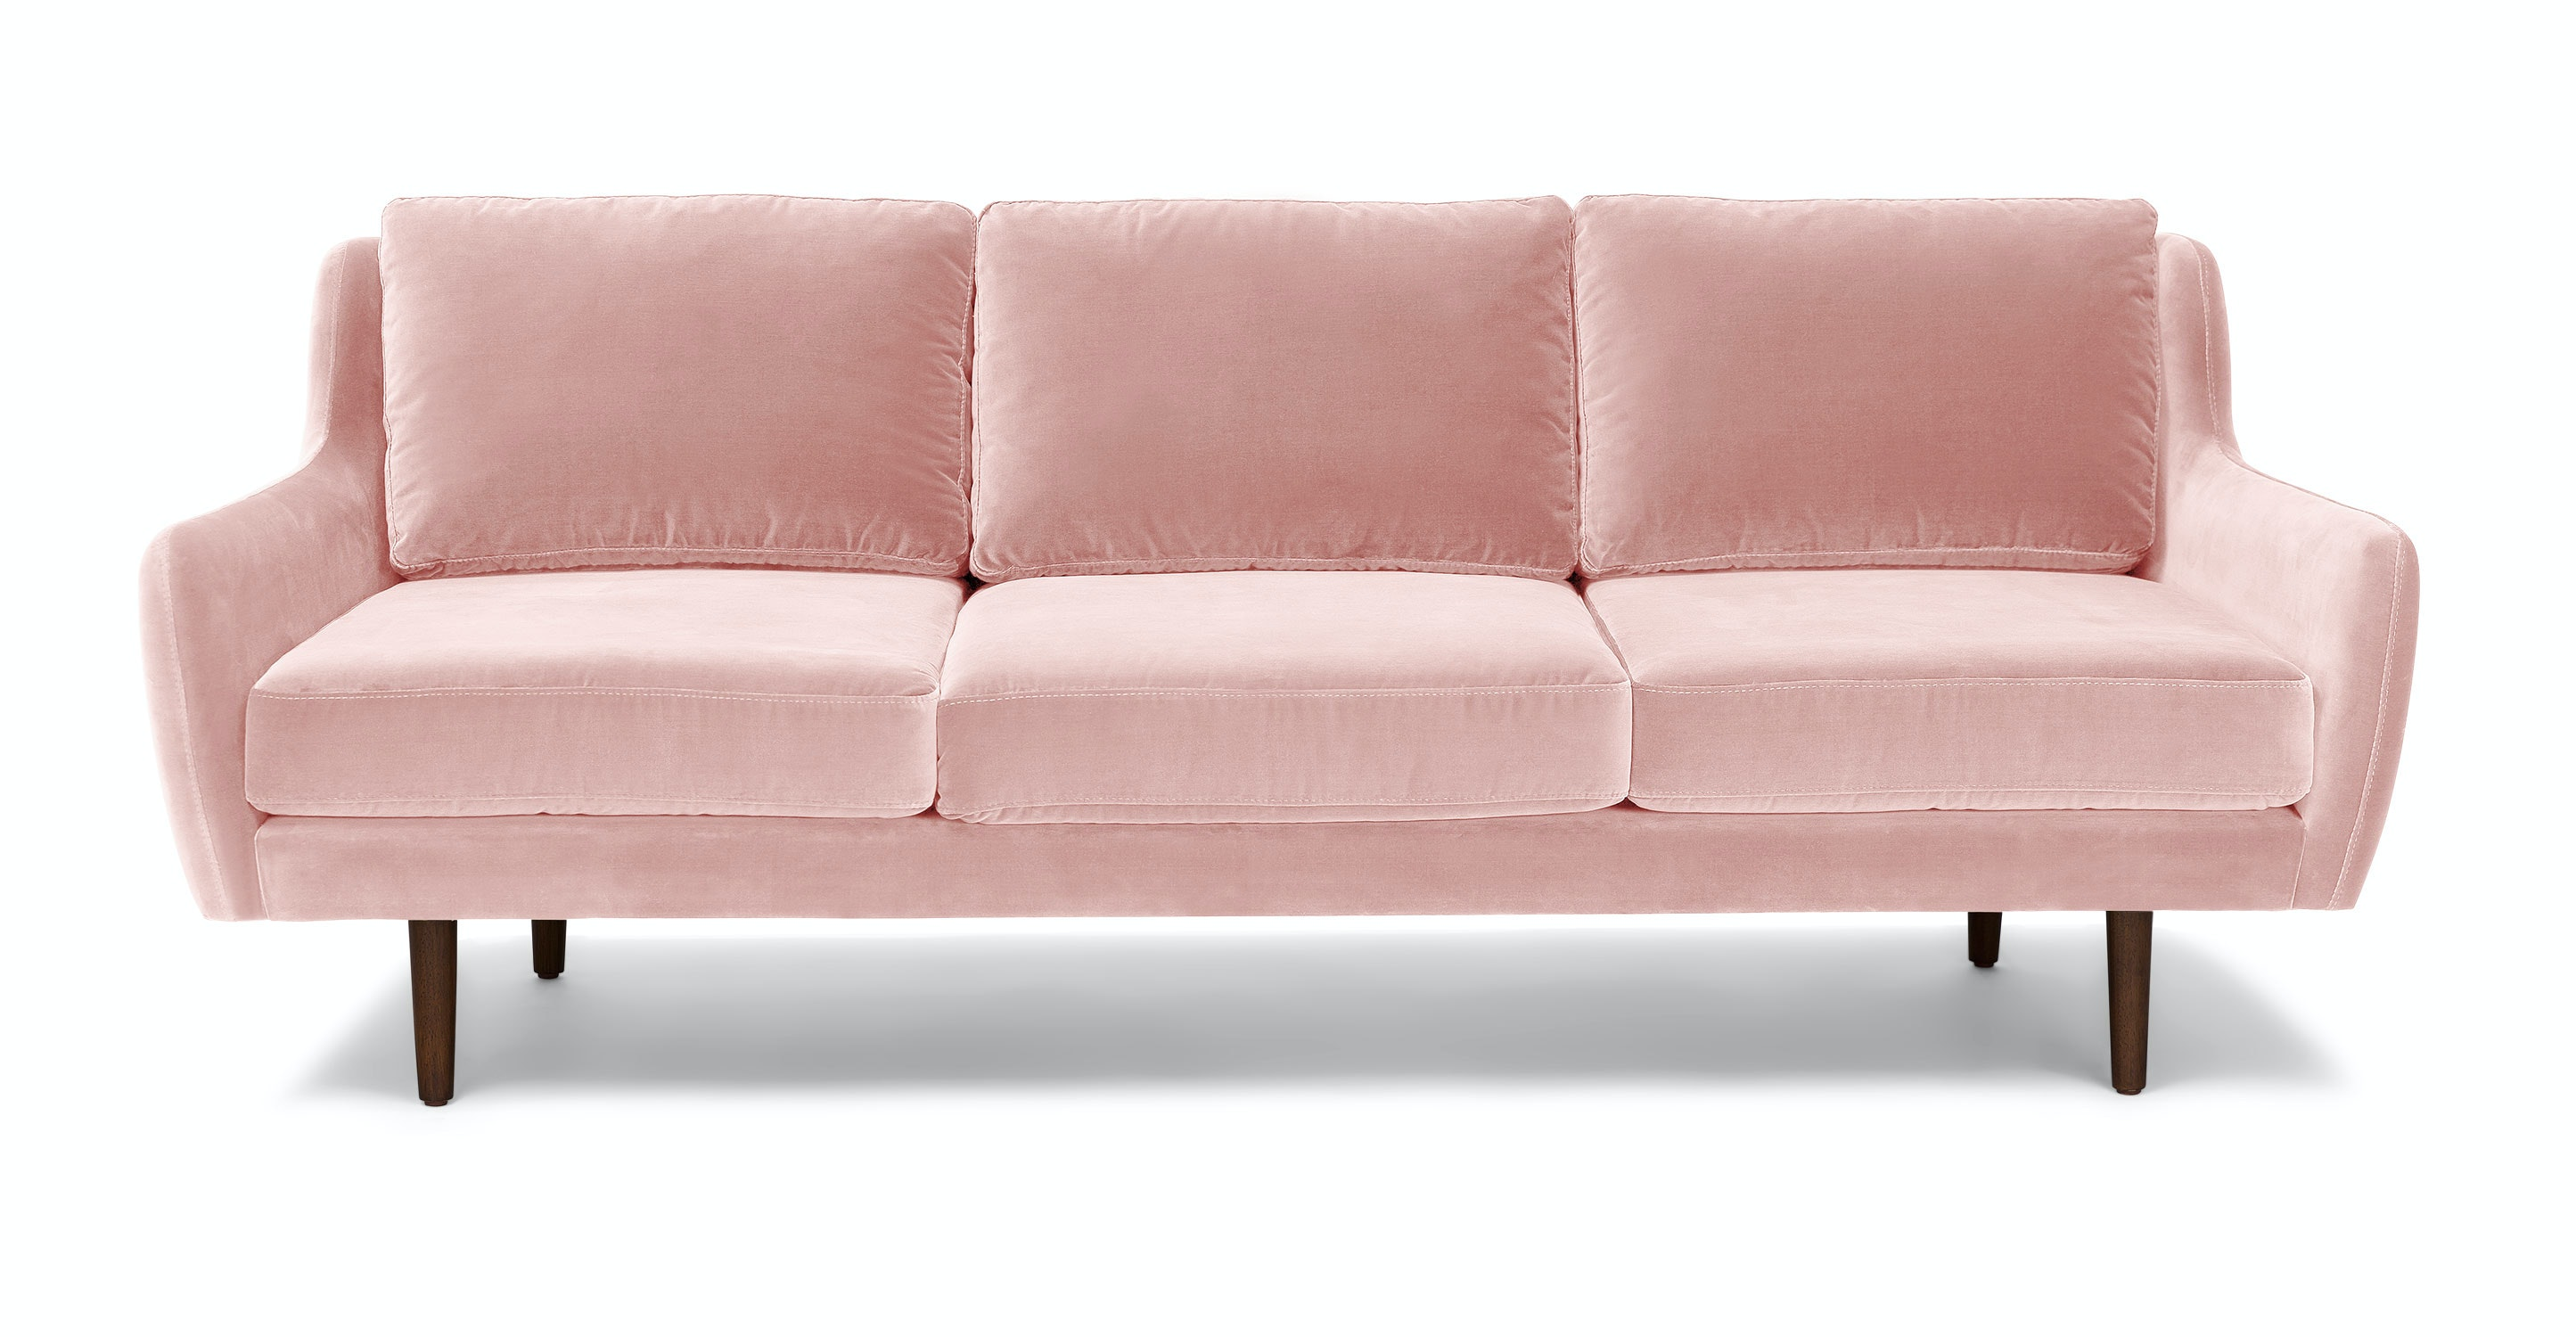 matrix blush pink sofa sofas article modern mid. Black Bedroom Furniture Sets. Home Design Ideas